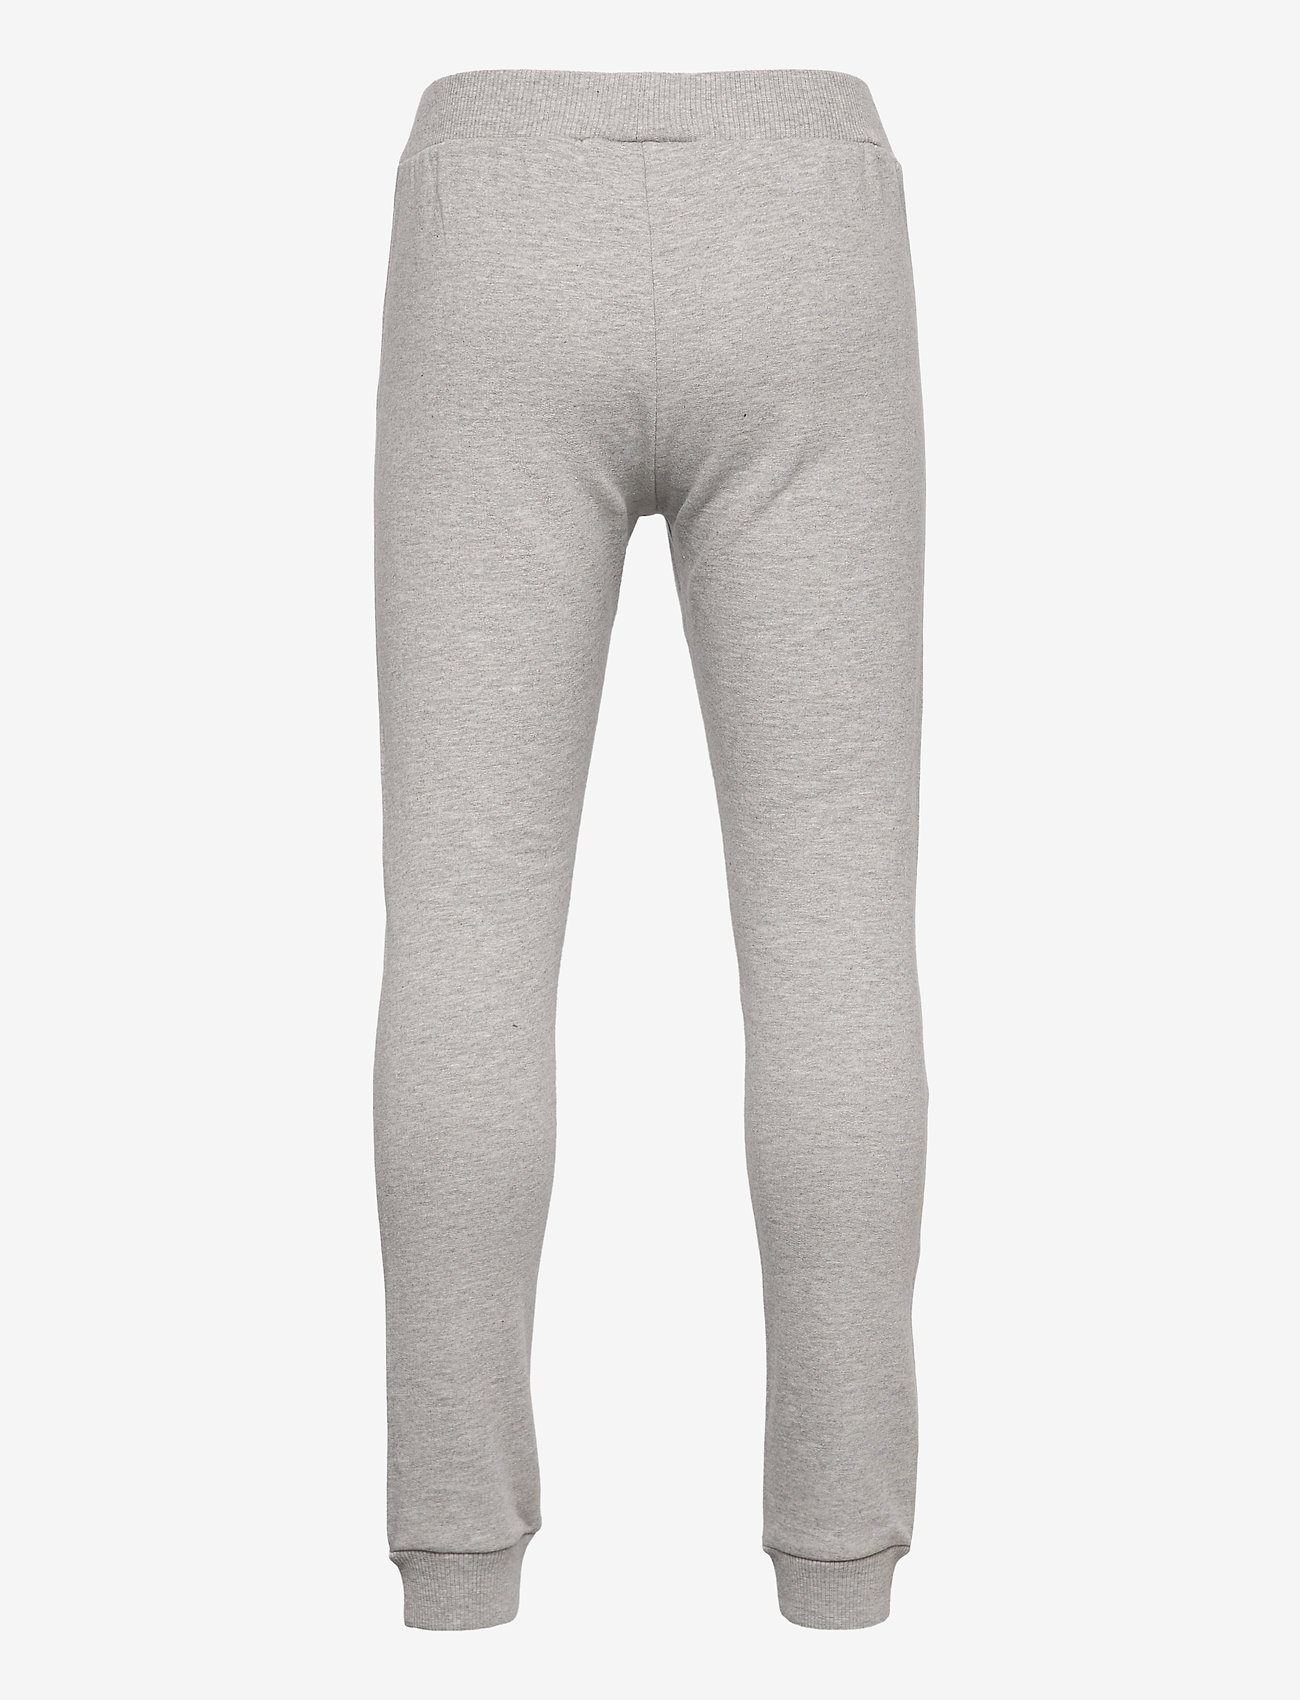 Lindex - Trousers motor place grey - trousers - grey - 1